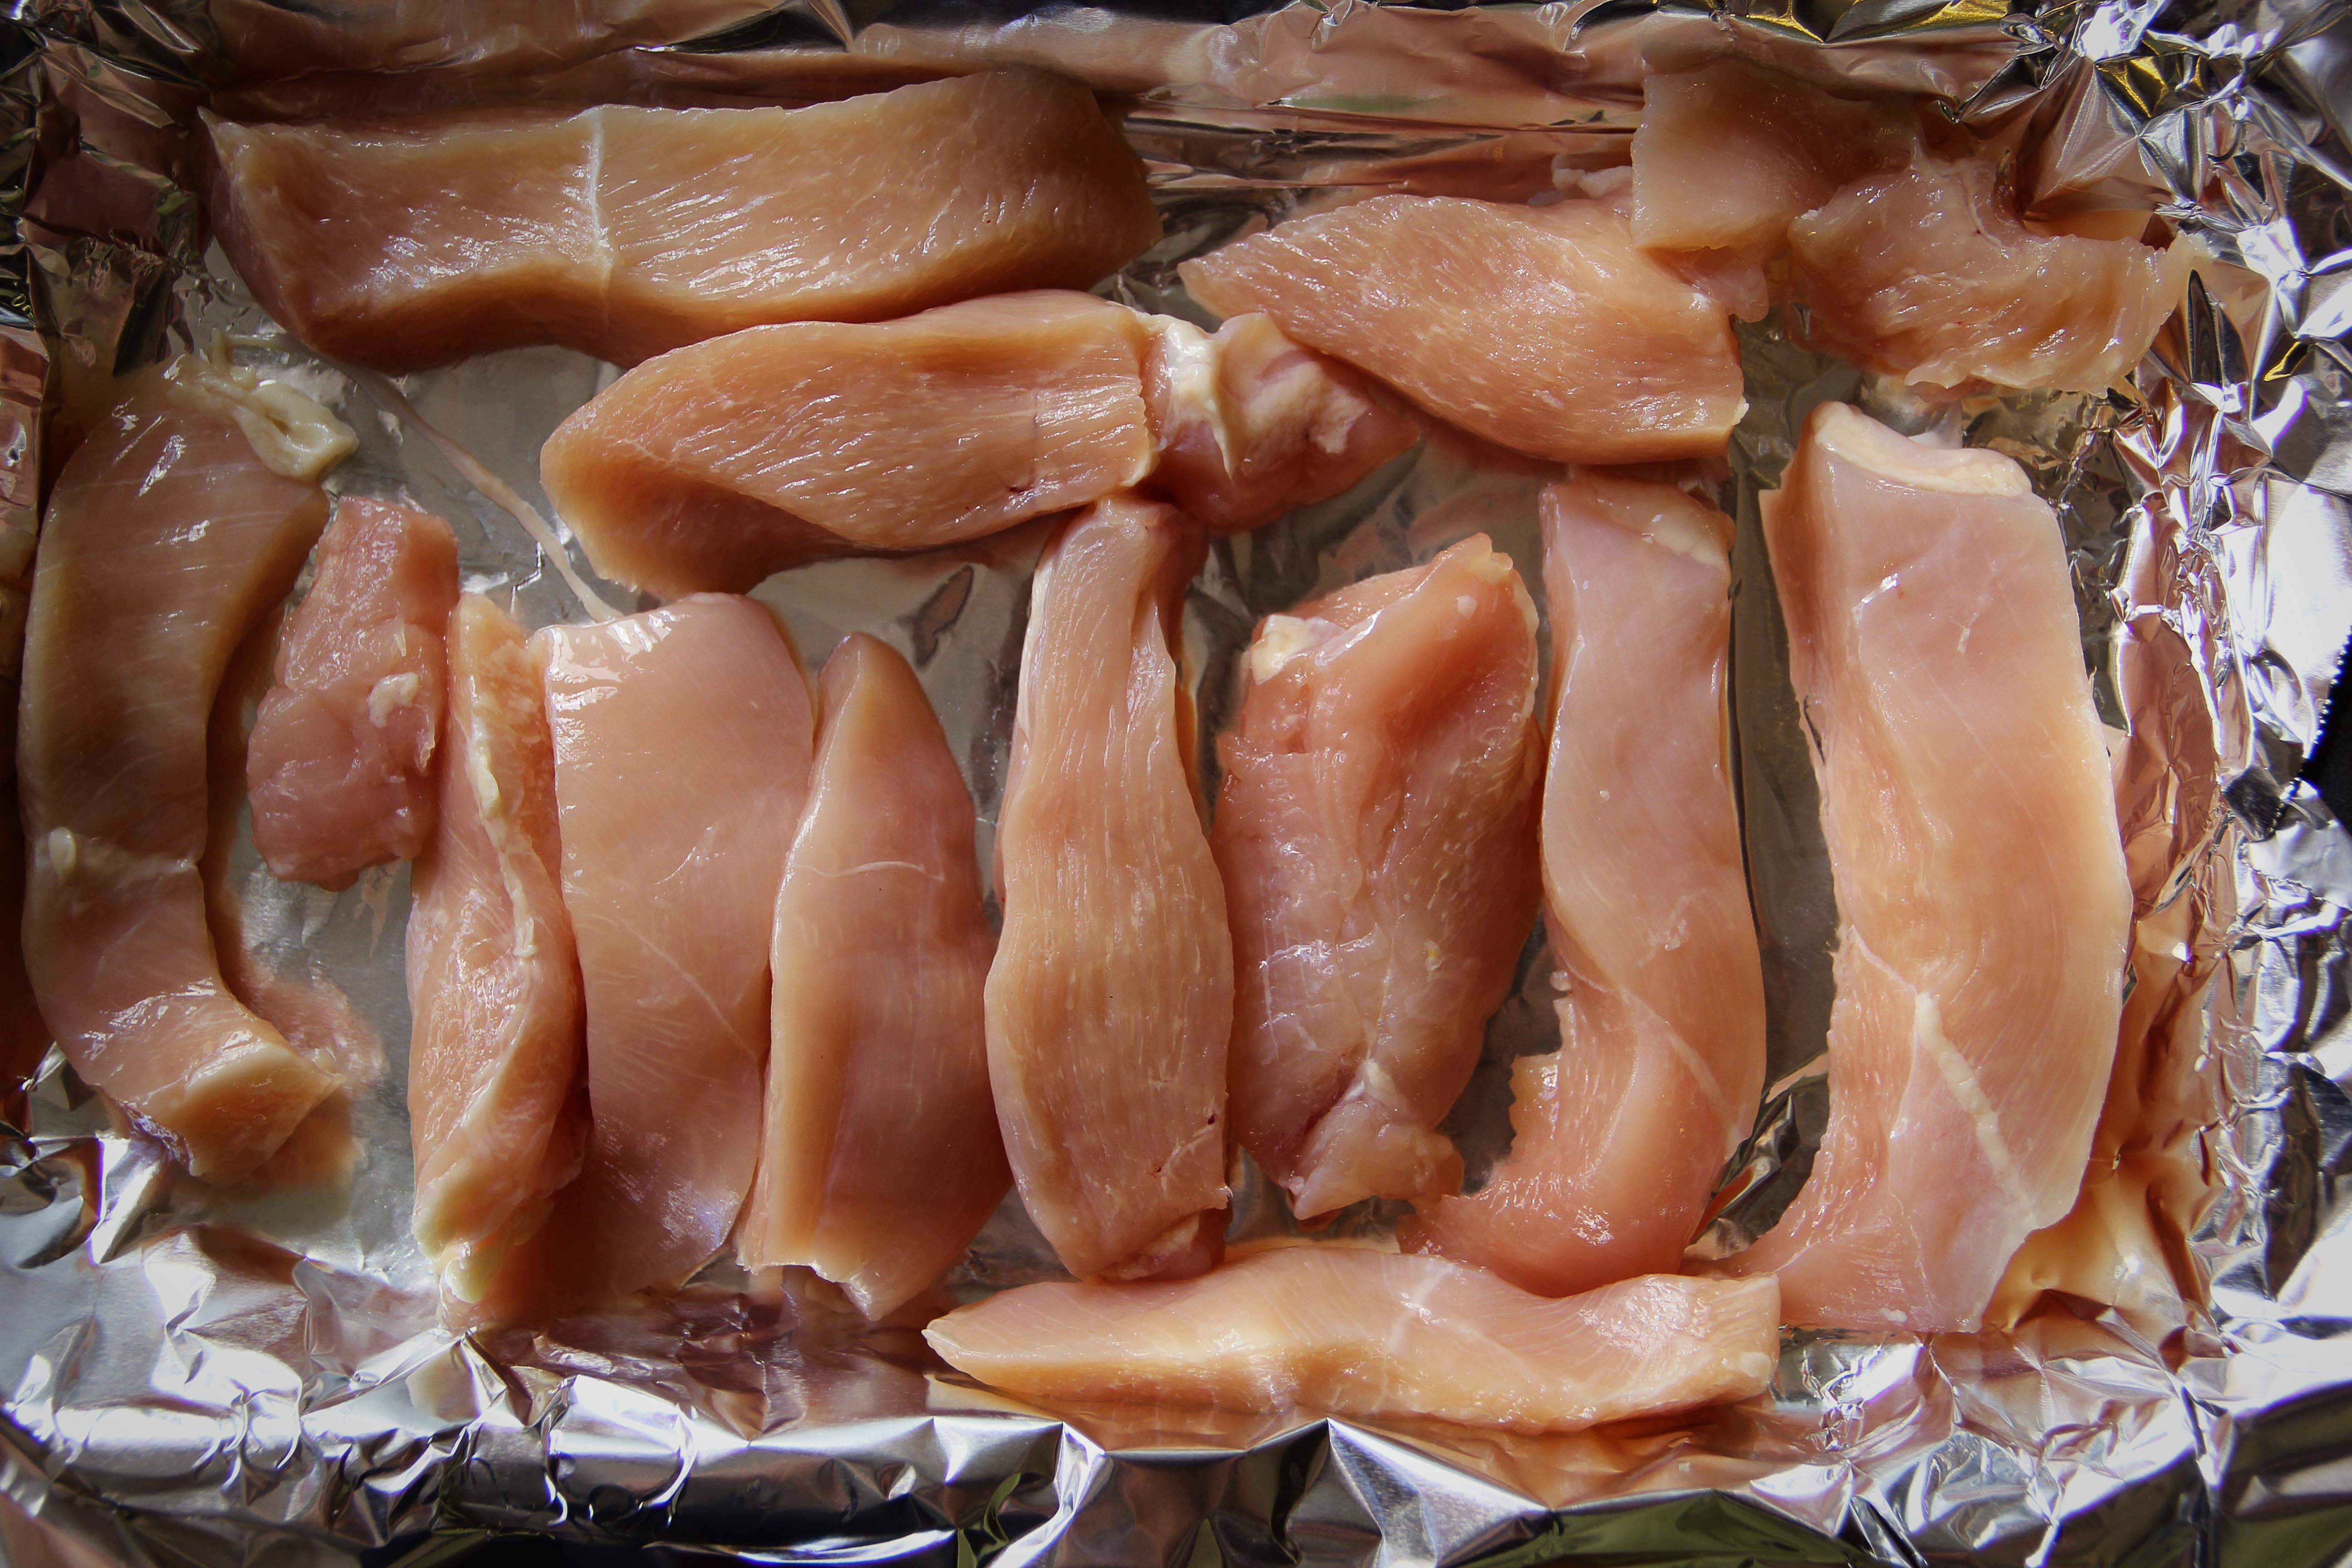 Spice On Both Sides Of The Chicken Pour  Olive Oil Or Your Sauce On One Side, Shake On Your Spices Of